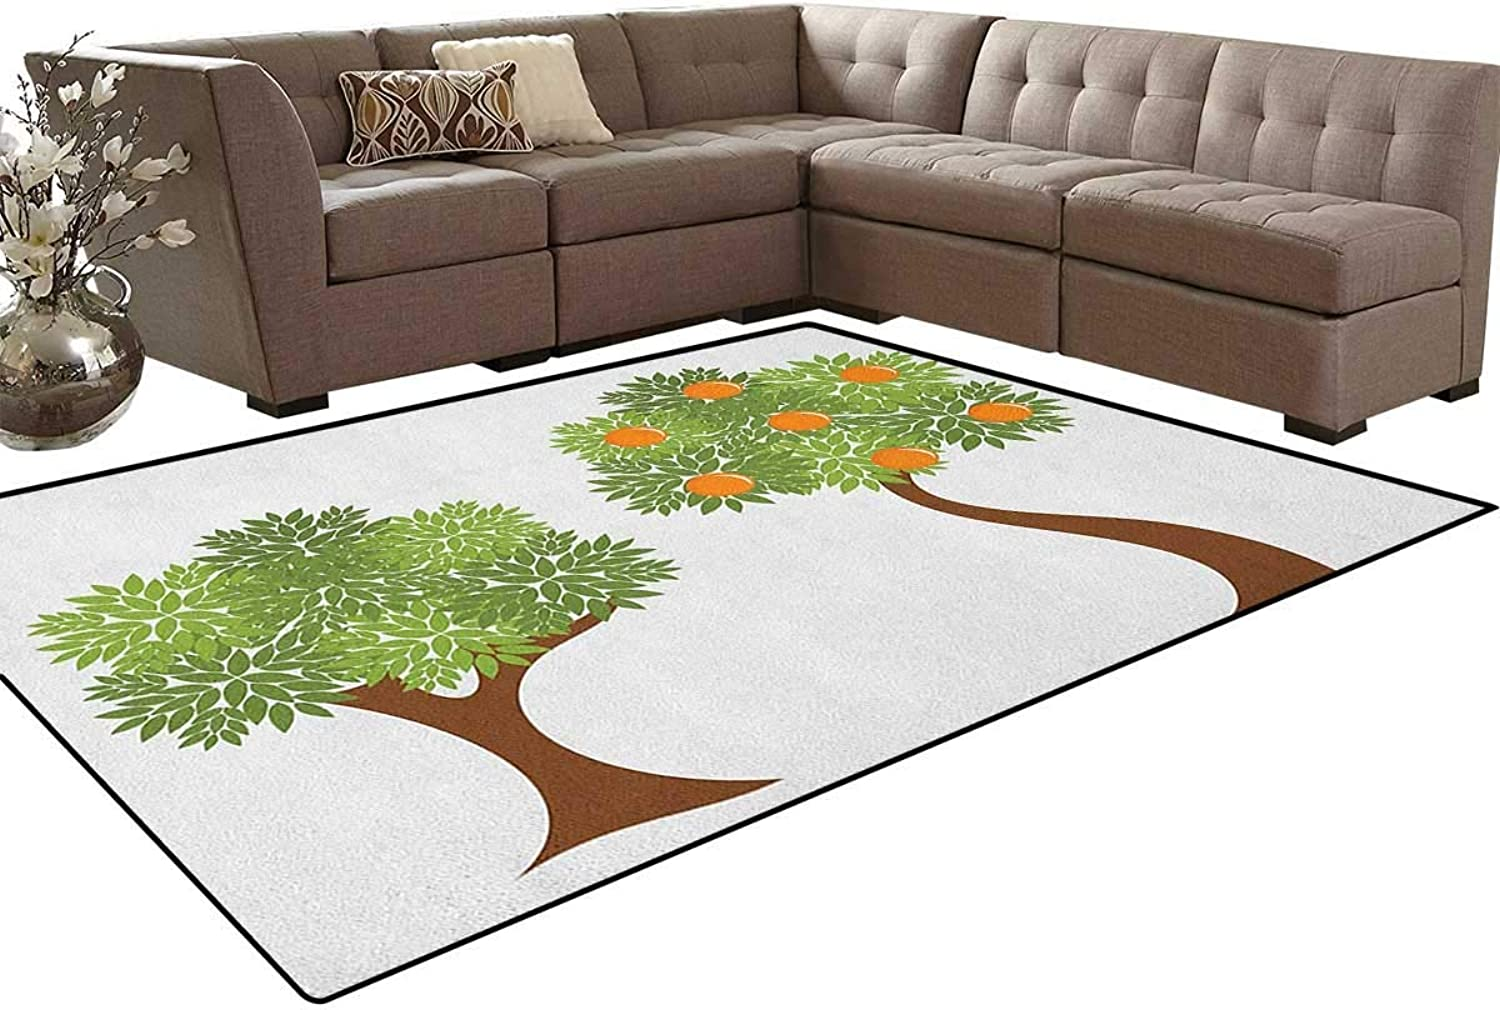 Two Trees with Fresh Foliage Leaves and oranges Nature Design Floor Mat Rug Indoor Front Door Kitchen and Living Room Bedroom Mats Rubber Non Slip